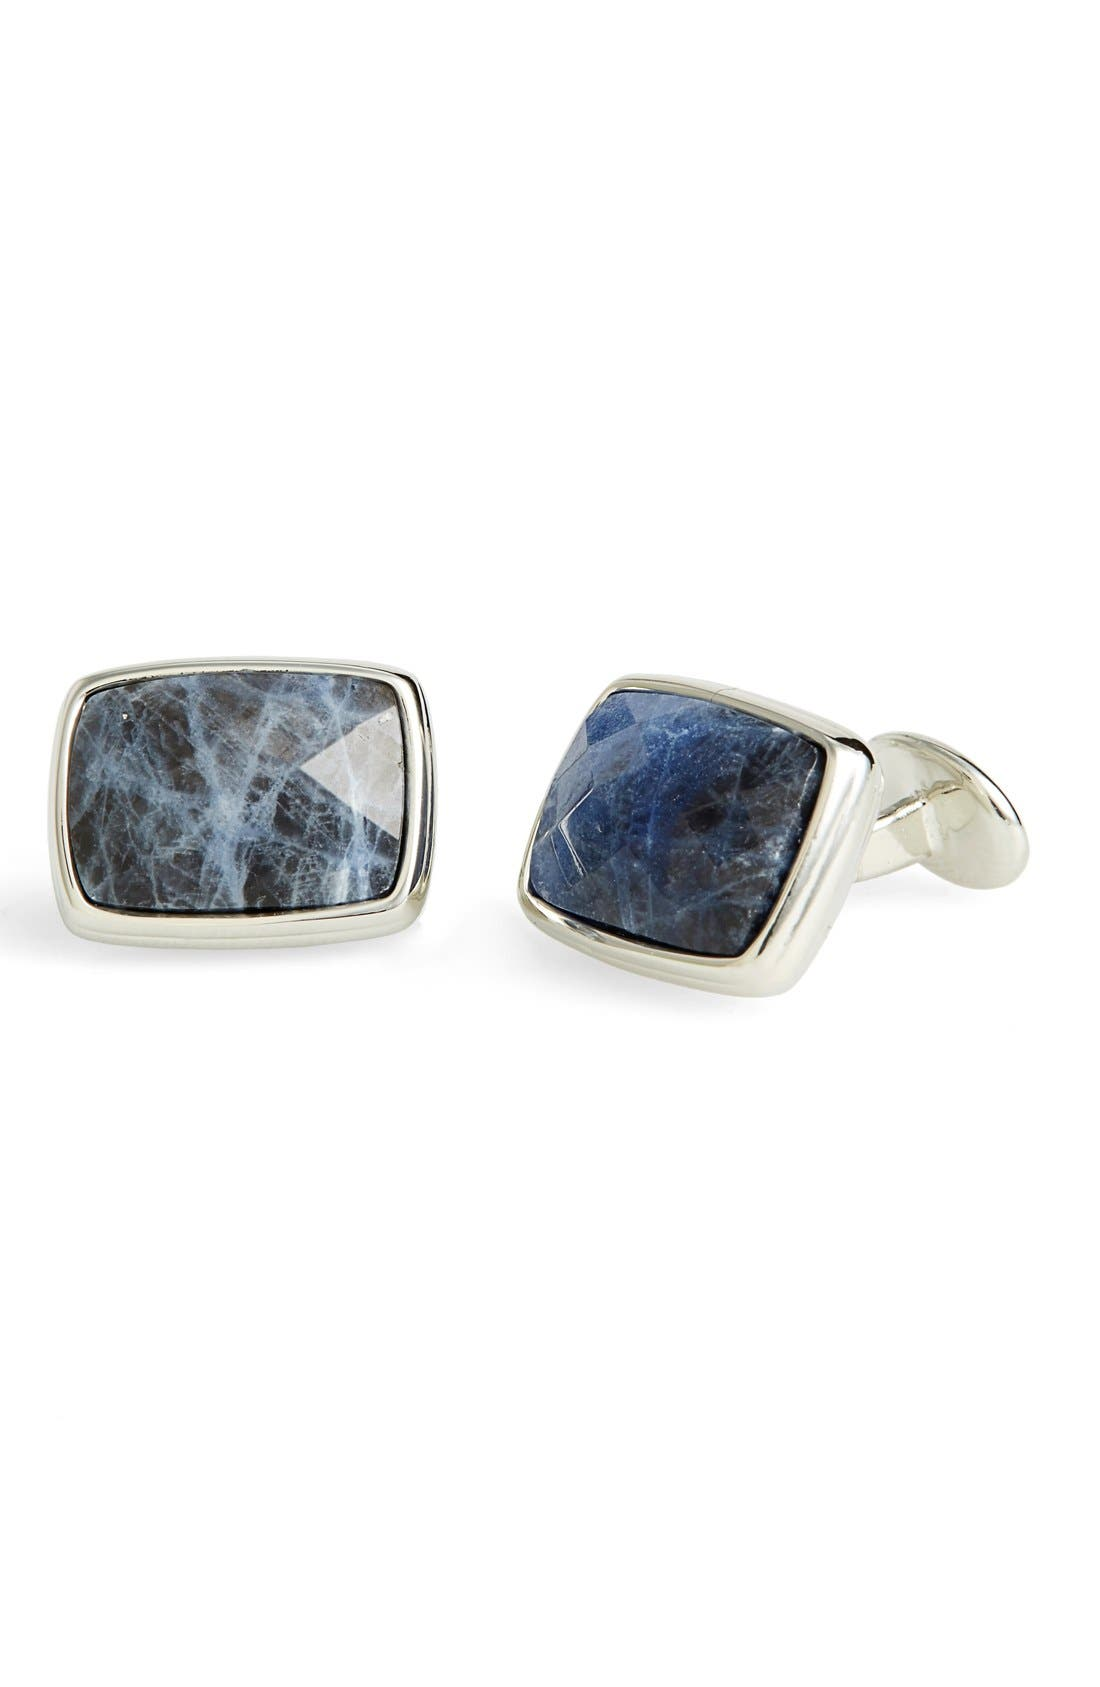 Main Image - David Donahue Sodalite Cuff Links